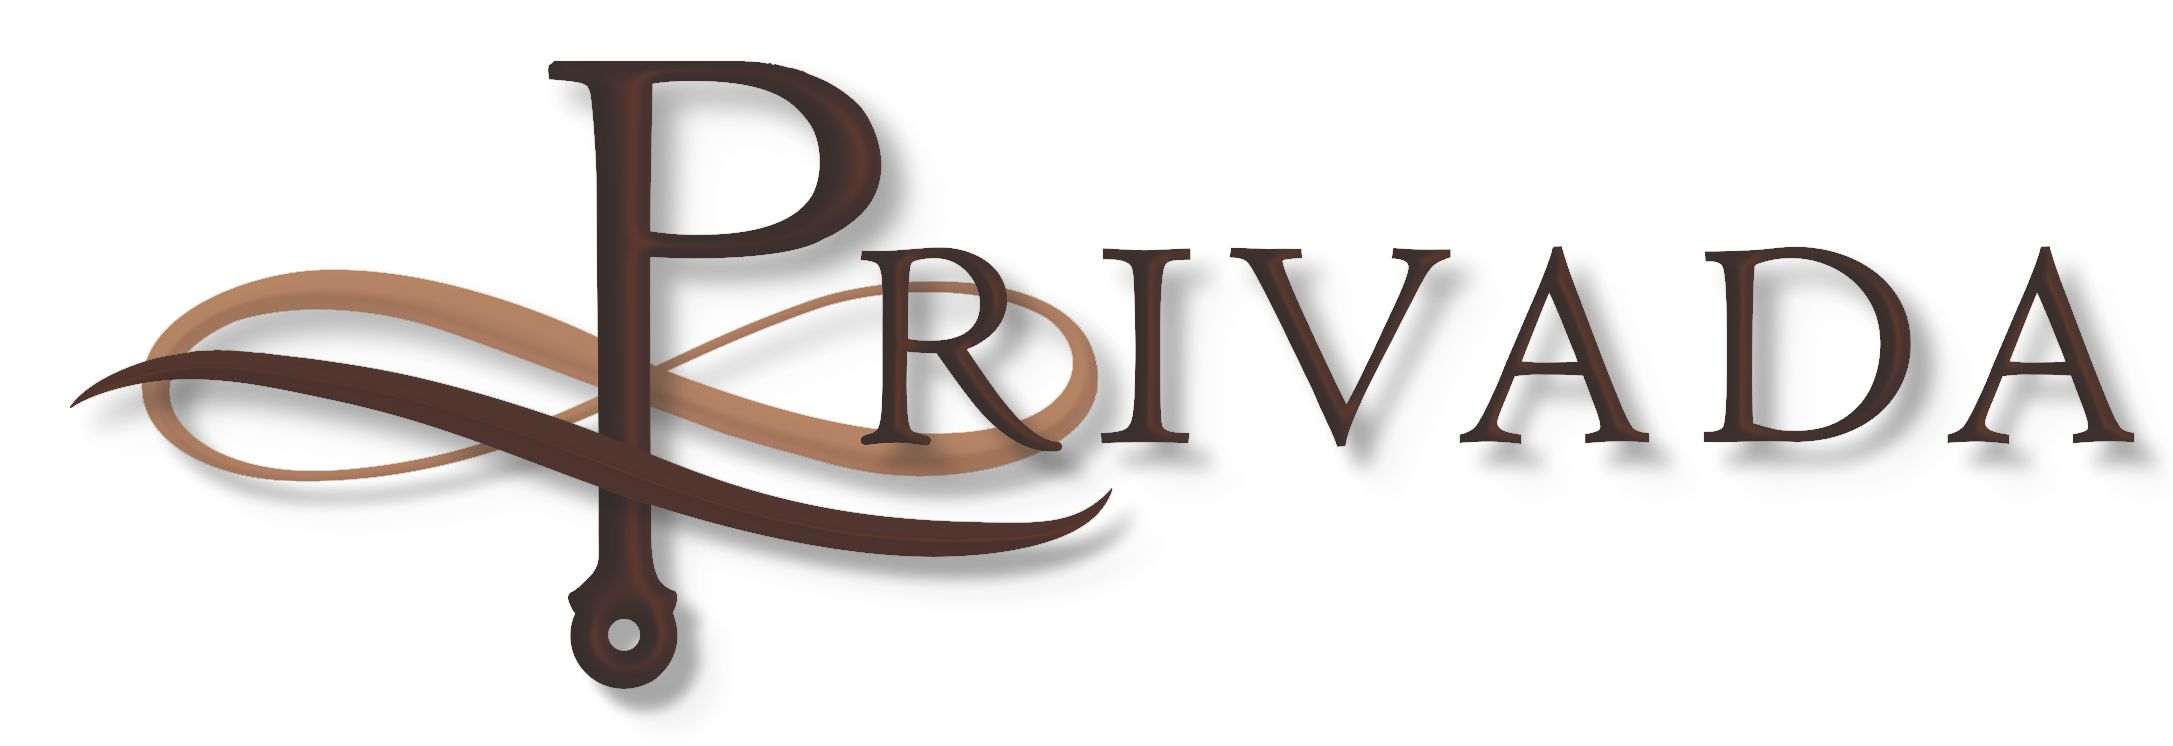 privada_full_logo_trans_cropped.jpg